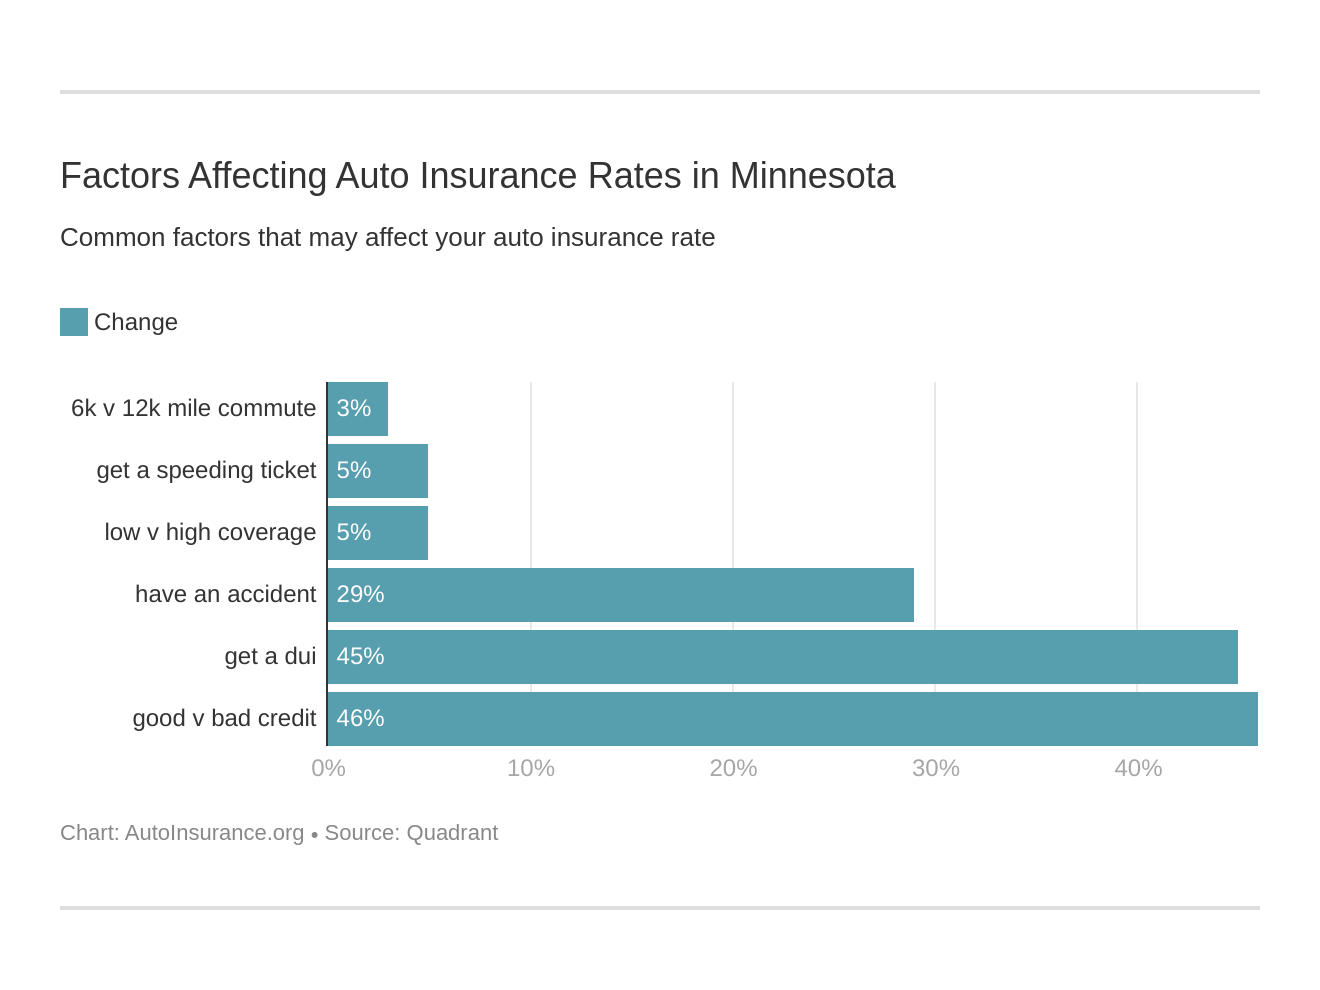 Factors Affecting Auto Insurance Rates in Minnesota